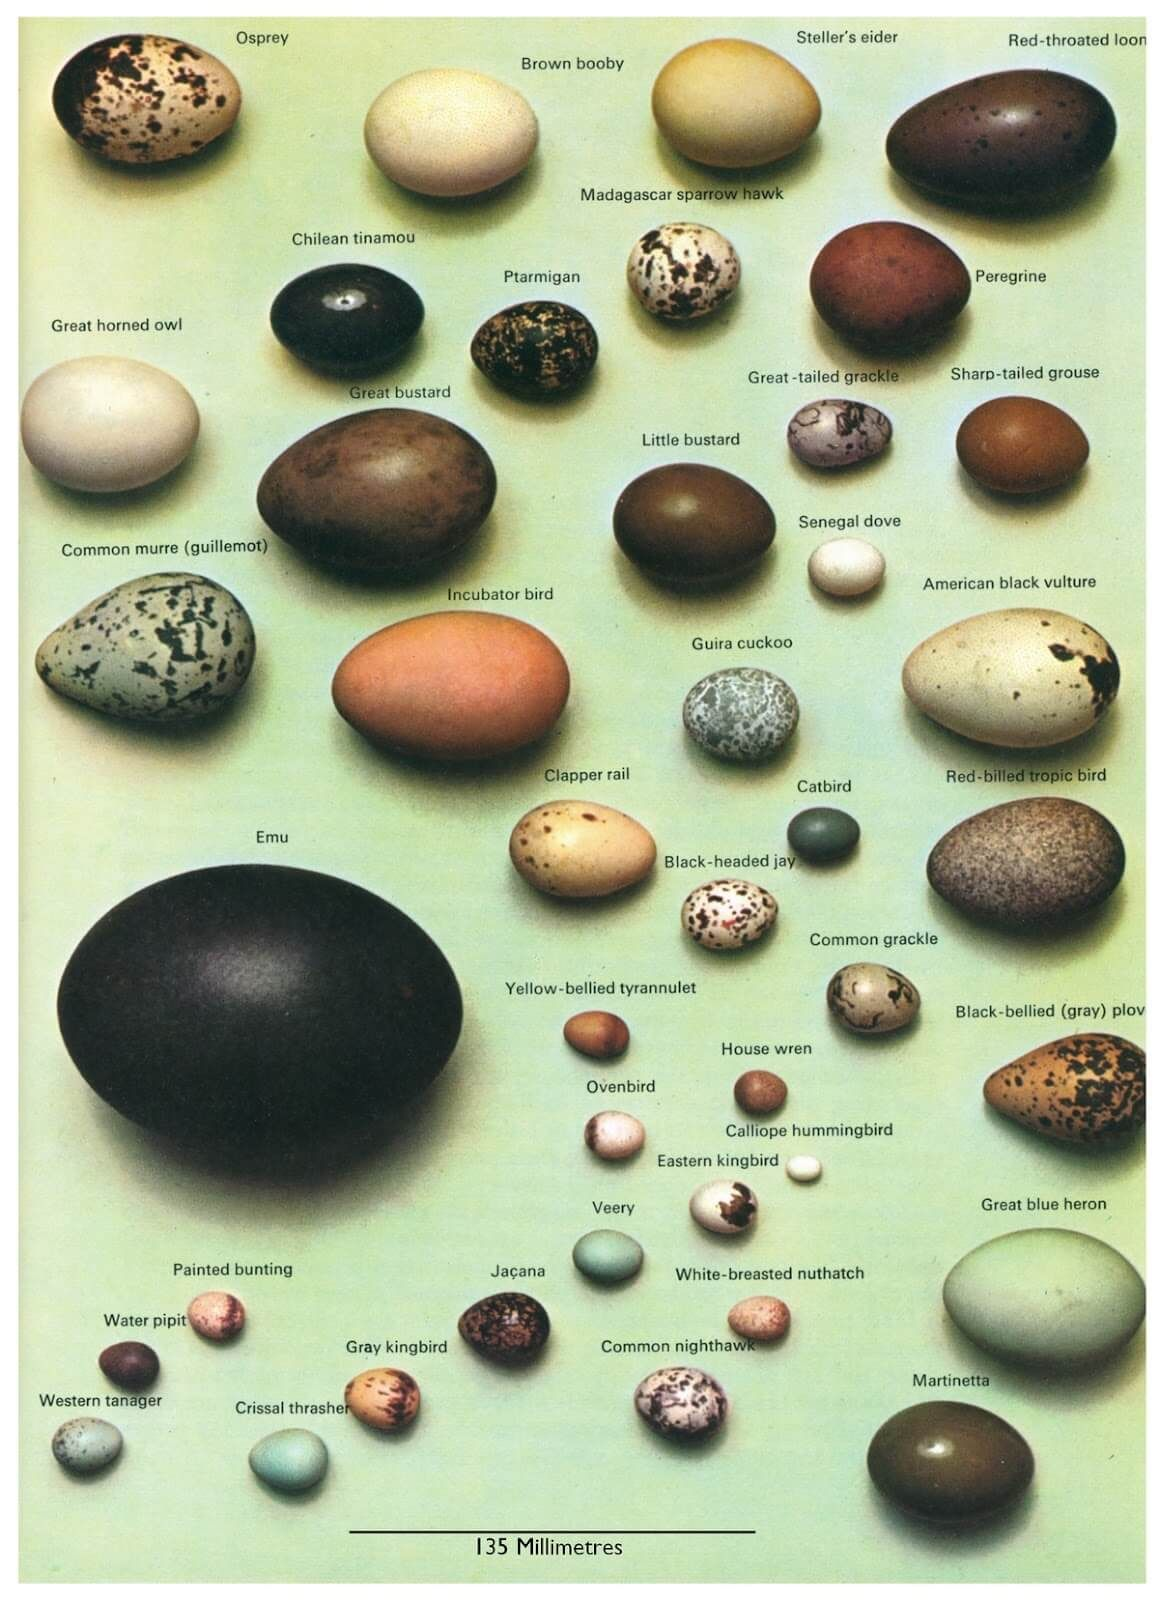 Beautiful birds love egg chart zoology visual analytics bird feeders also pin by jessica lowery on ornithology pinterest eggs and rh